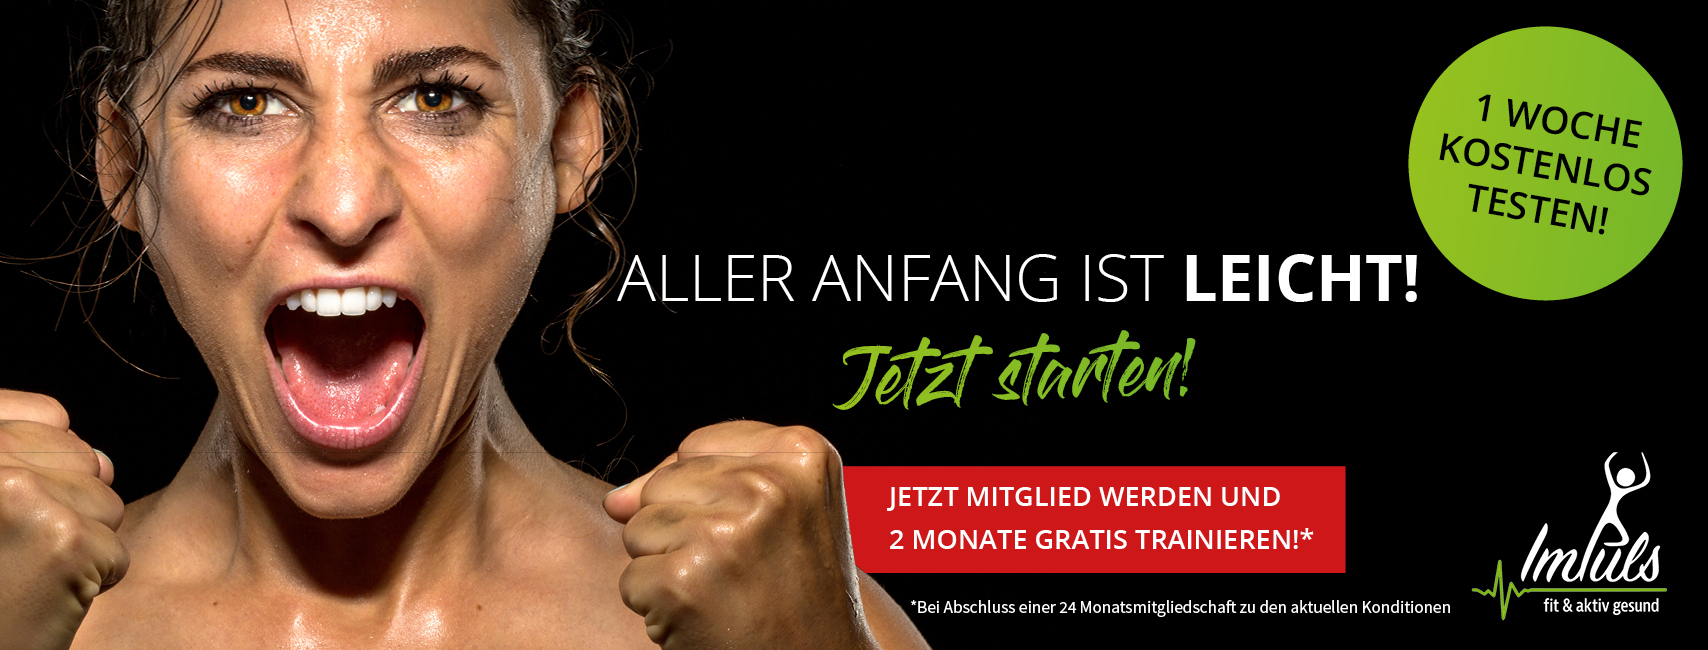 Aller Anfang ist Leicht Kampagne